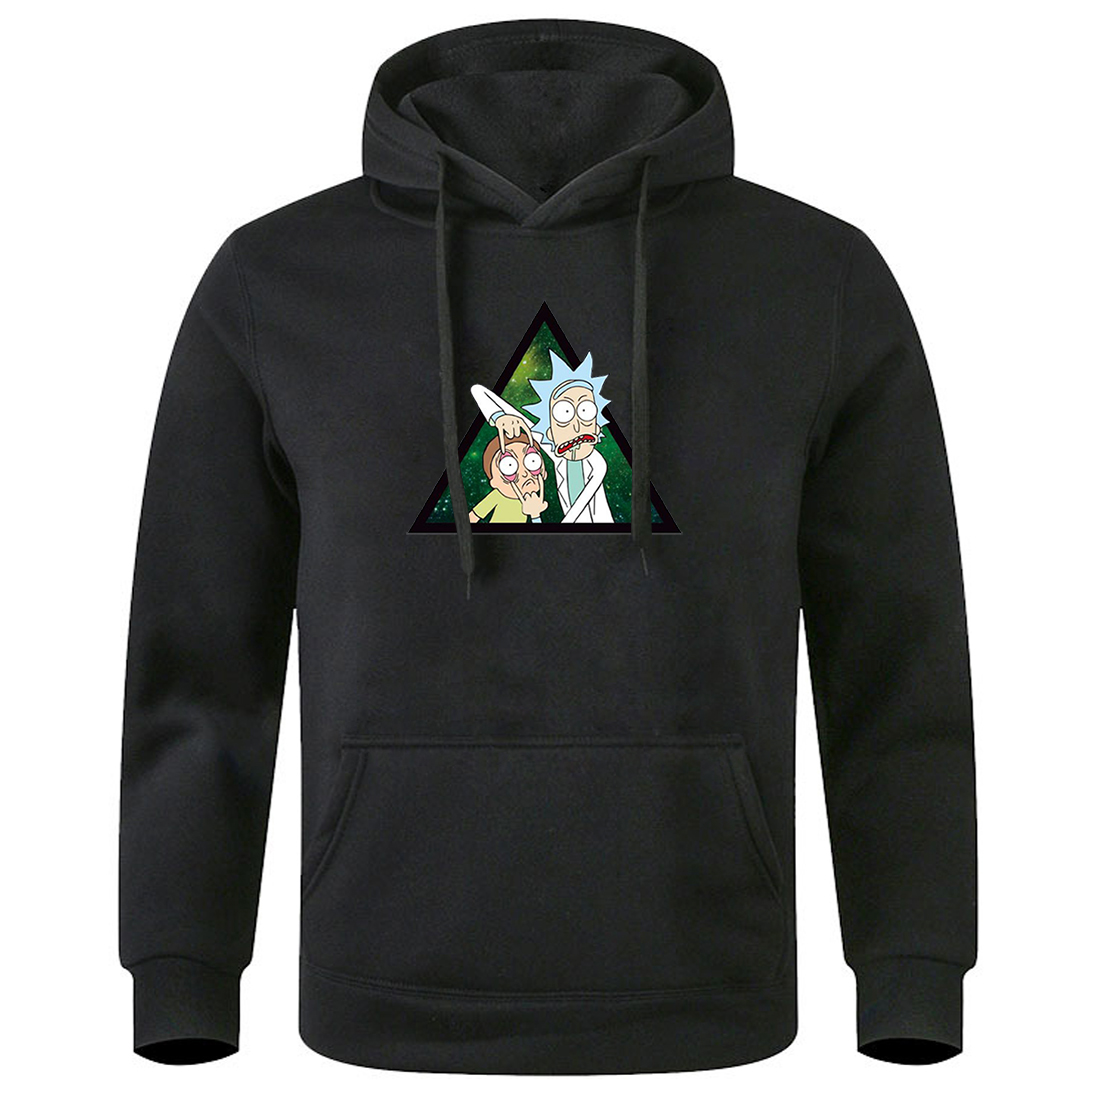 Male Hooded Tops Rick And Morty Men Hoodies 2020 Keep Warm Autumn Winter Sweatshirts Fashion Leisure Clothes Long Sleeve Hoody